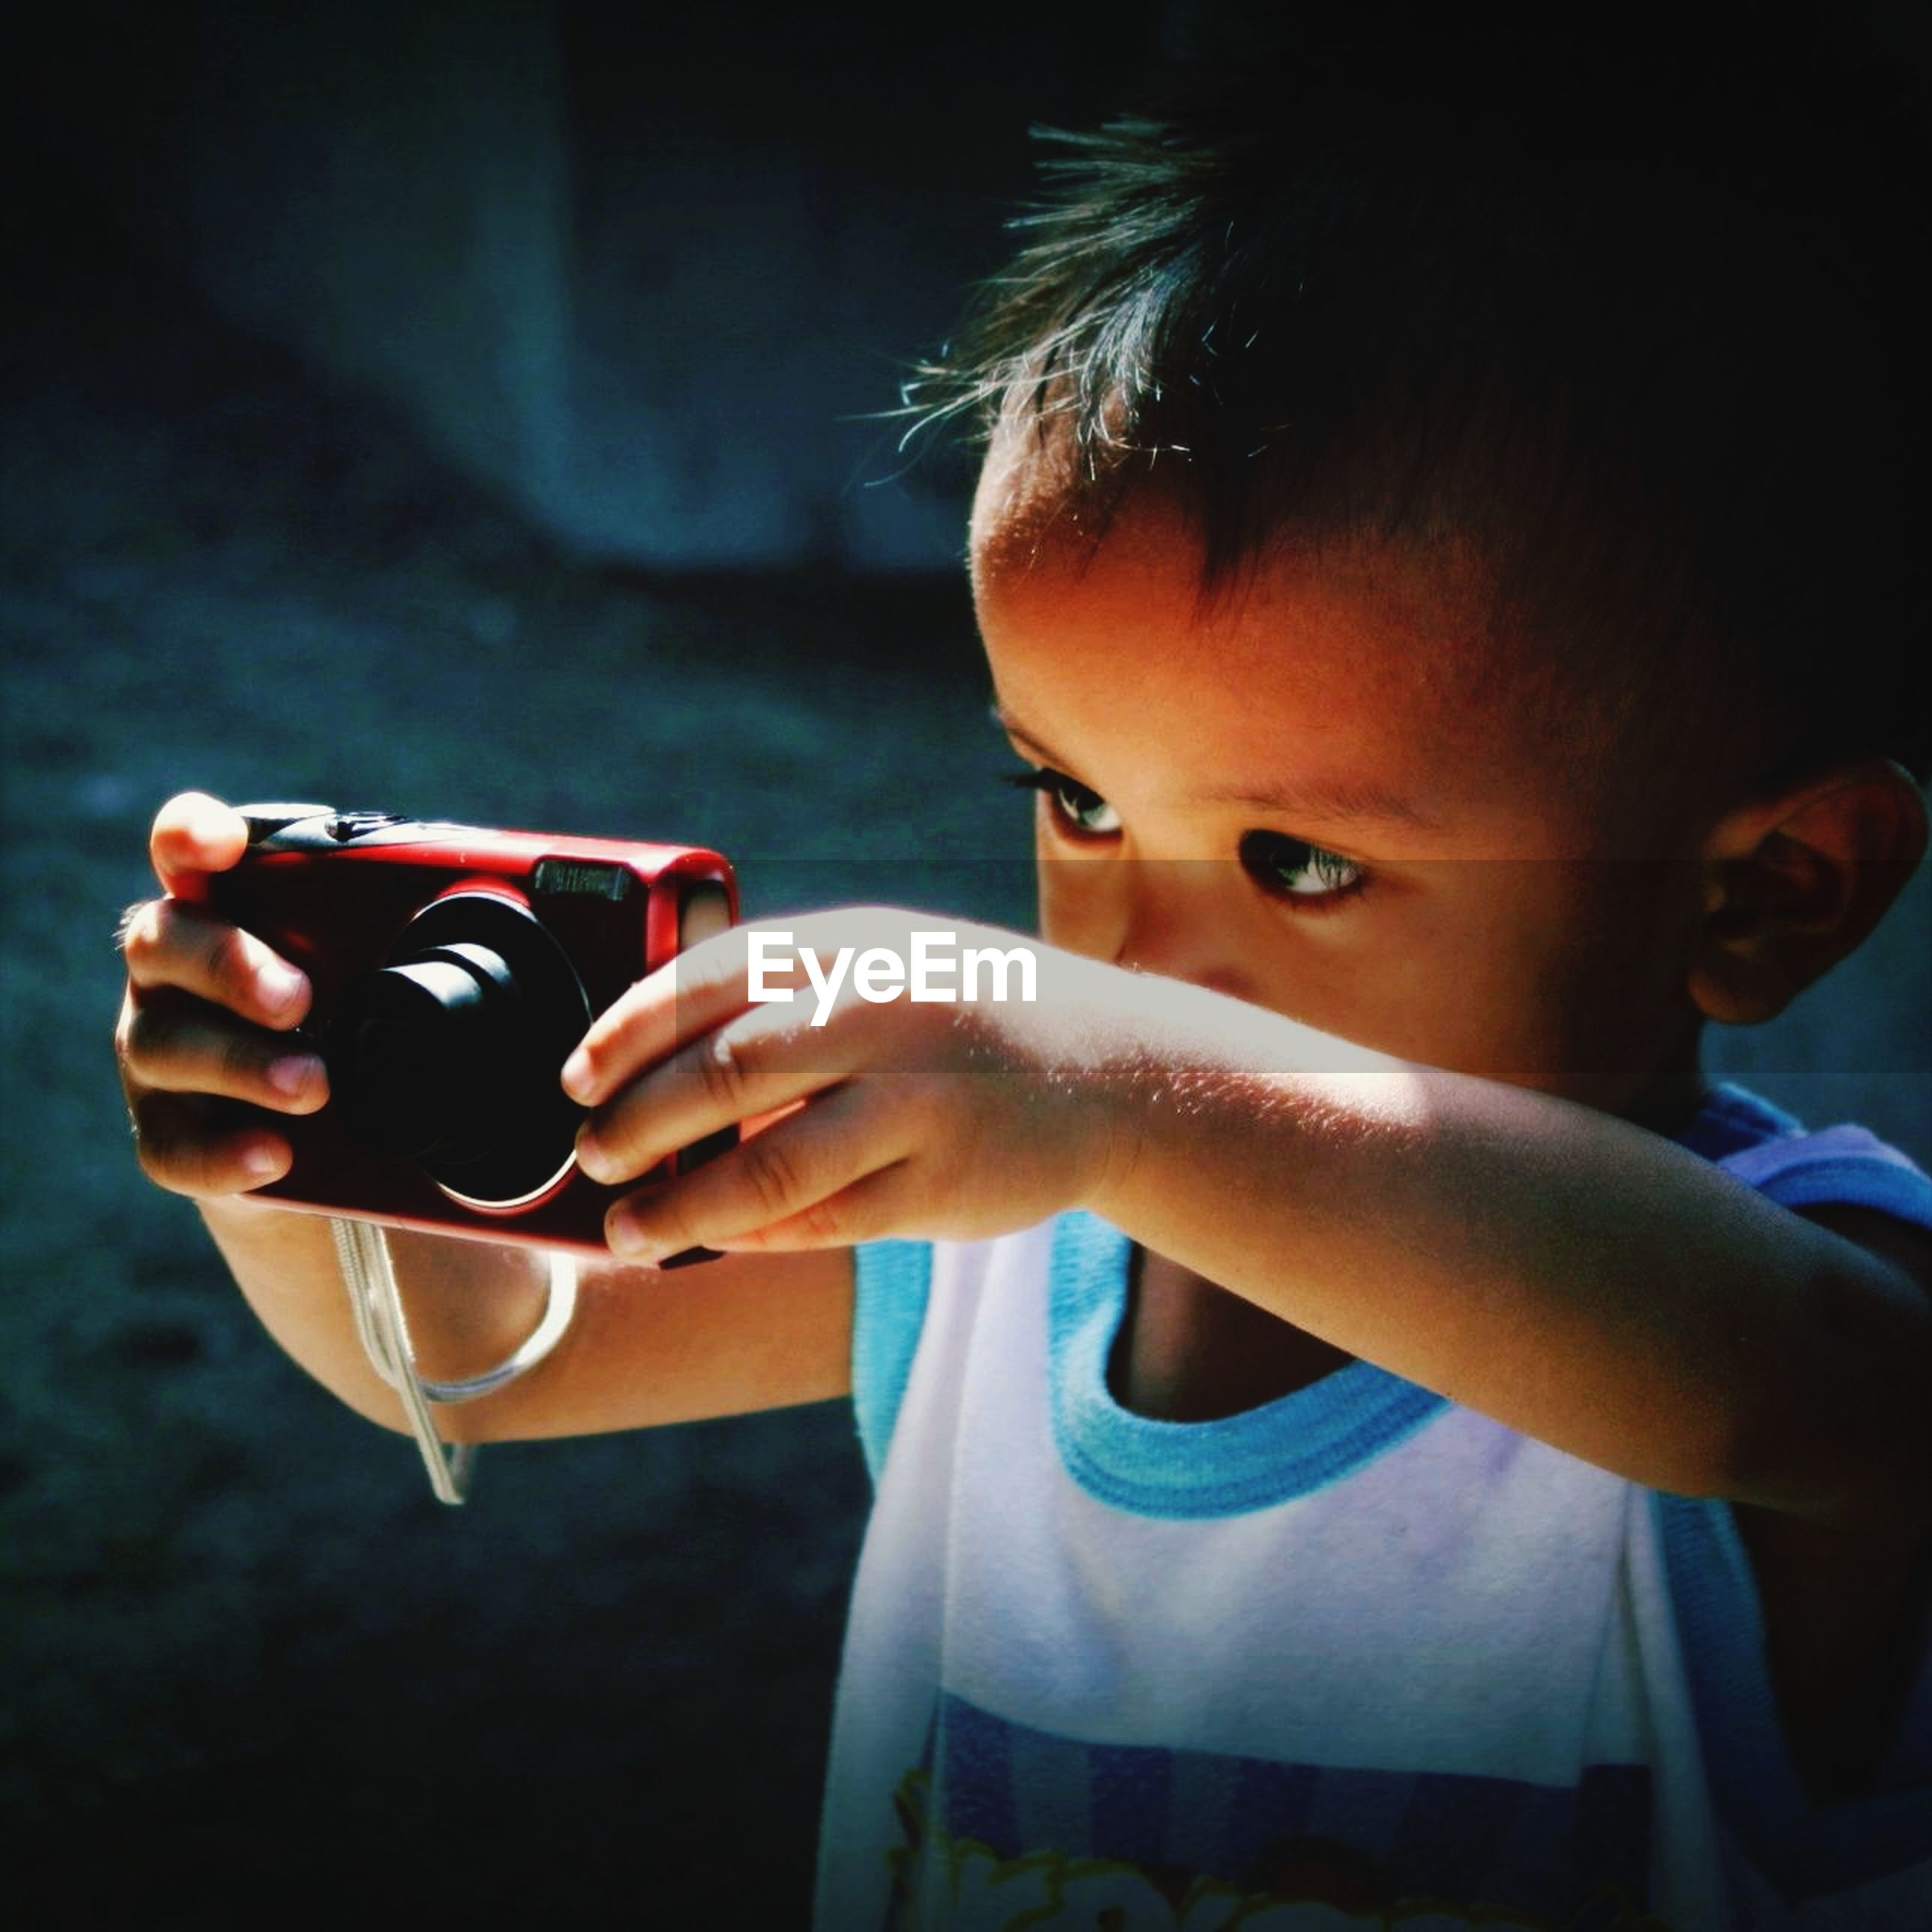 childhood, elementary age, lifestyles, indoors, innocence, headshot, focus on foreground, boys, leisure activity, cute, person, girls, food and drink, close-up, holding, casual clothing, waist up, head and shoulders